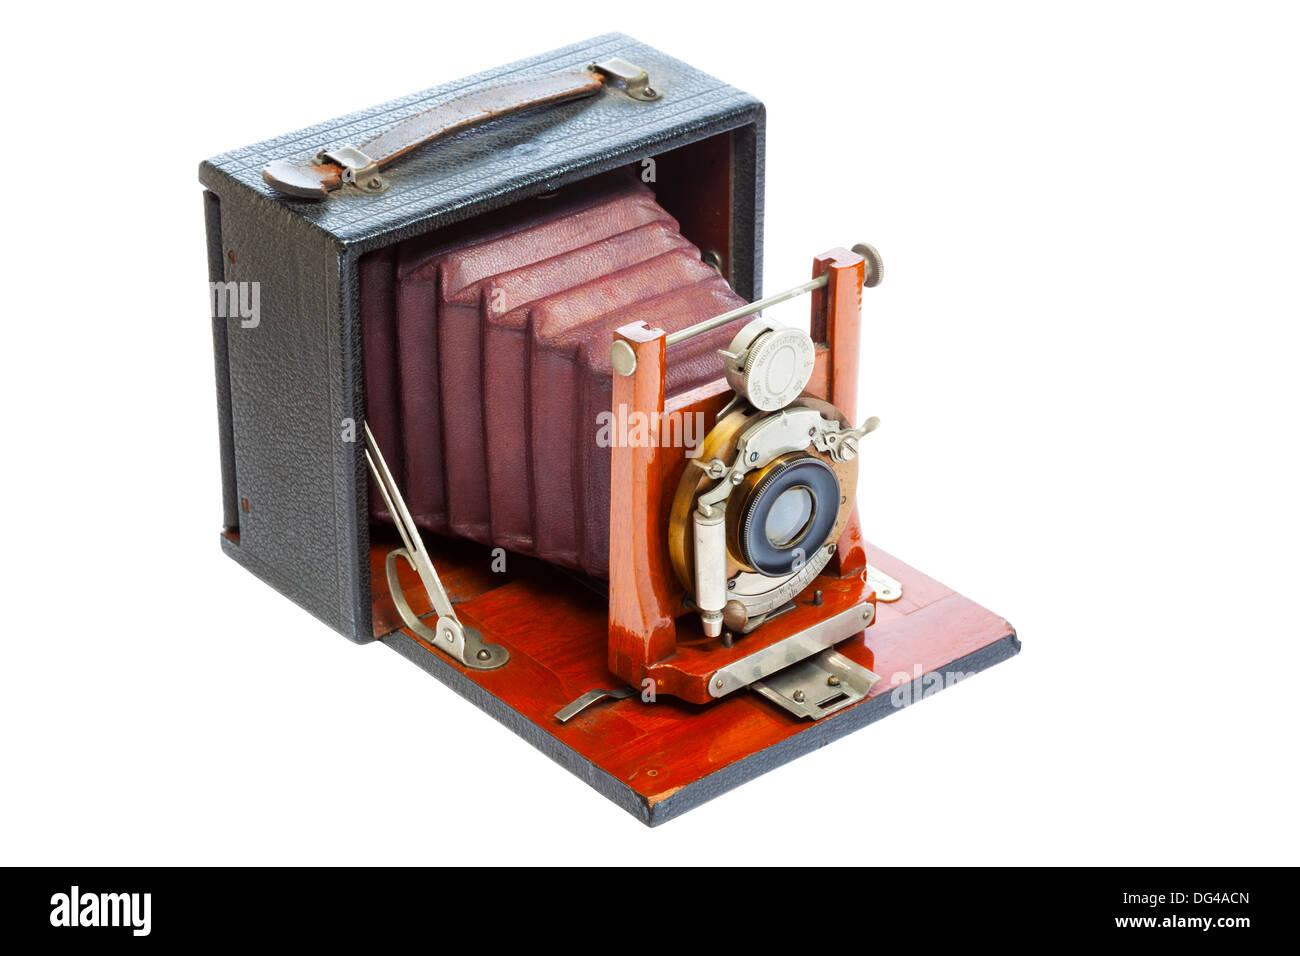 Antique view Camera with leather bellows isolated on a white background - Stock Image